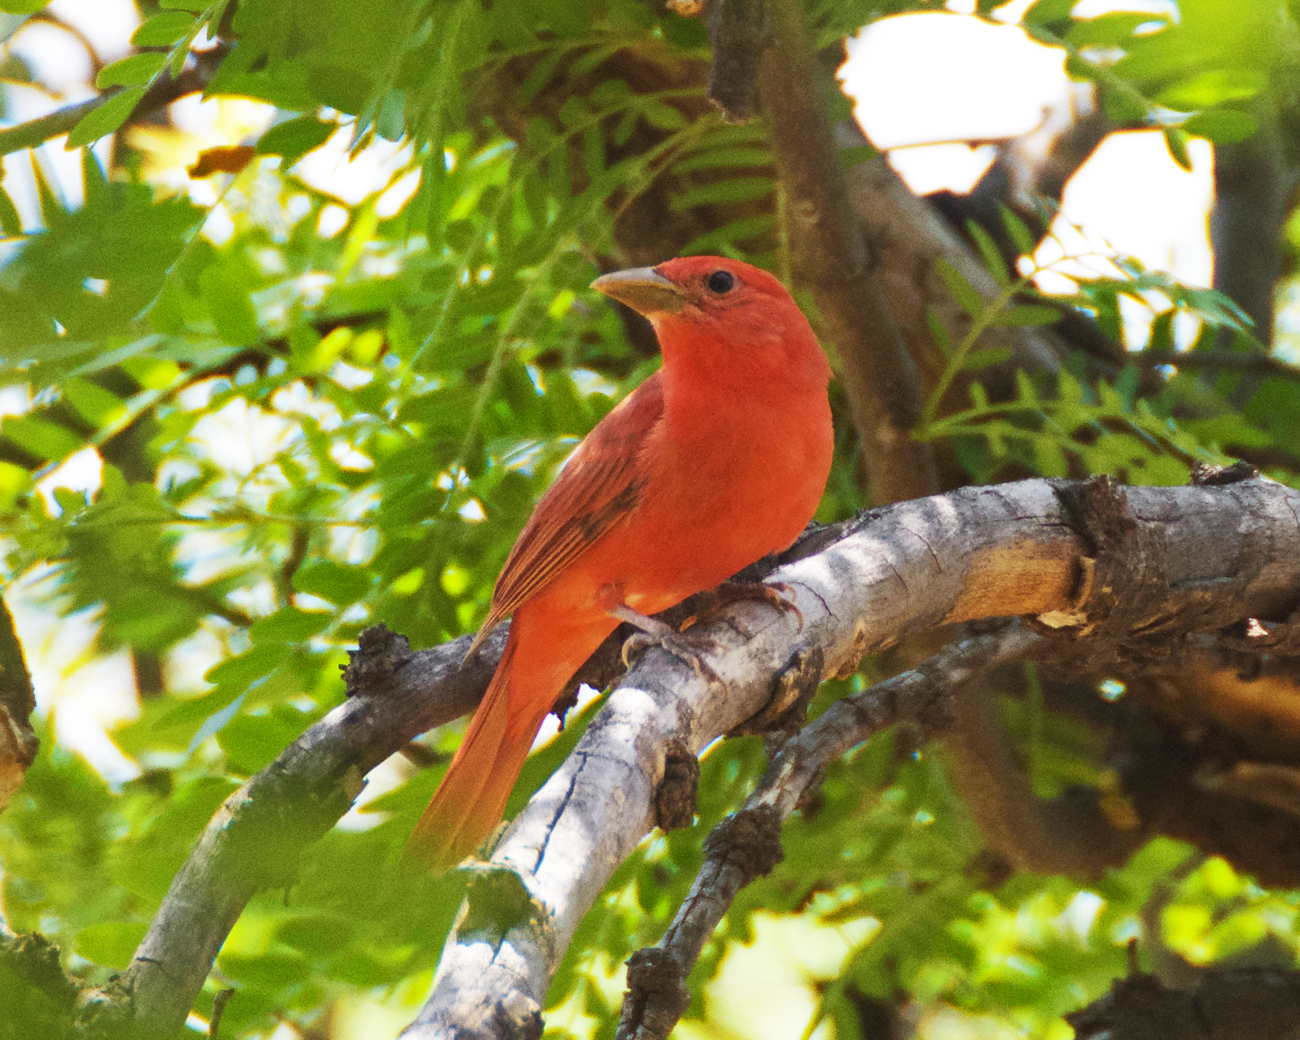 Bright red summer tanager perched on a tree branch at Daniels Ranch